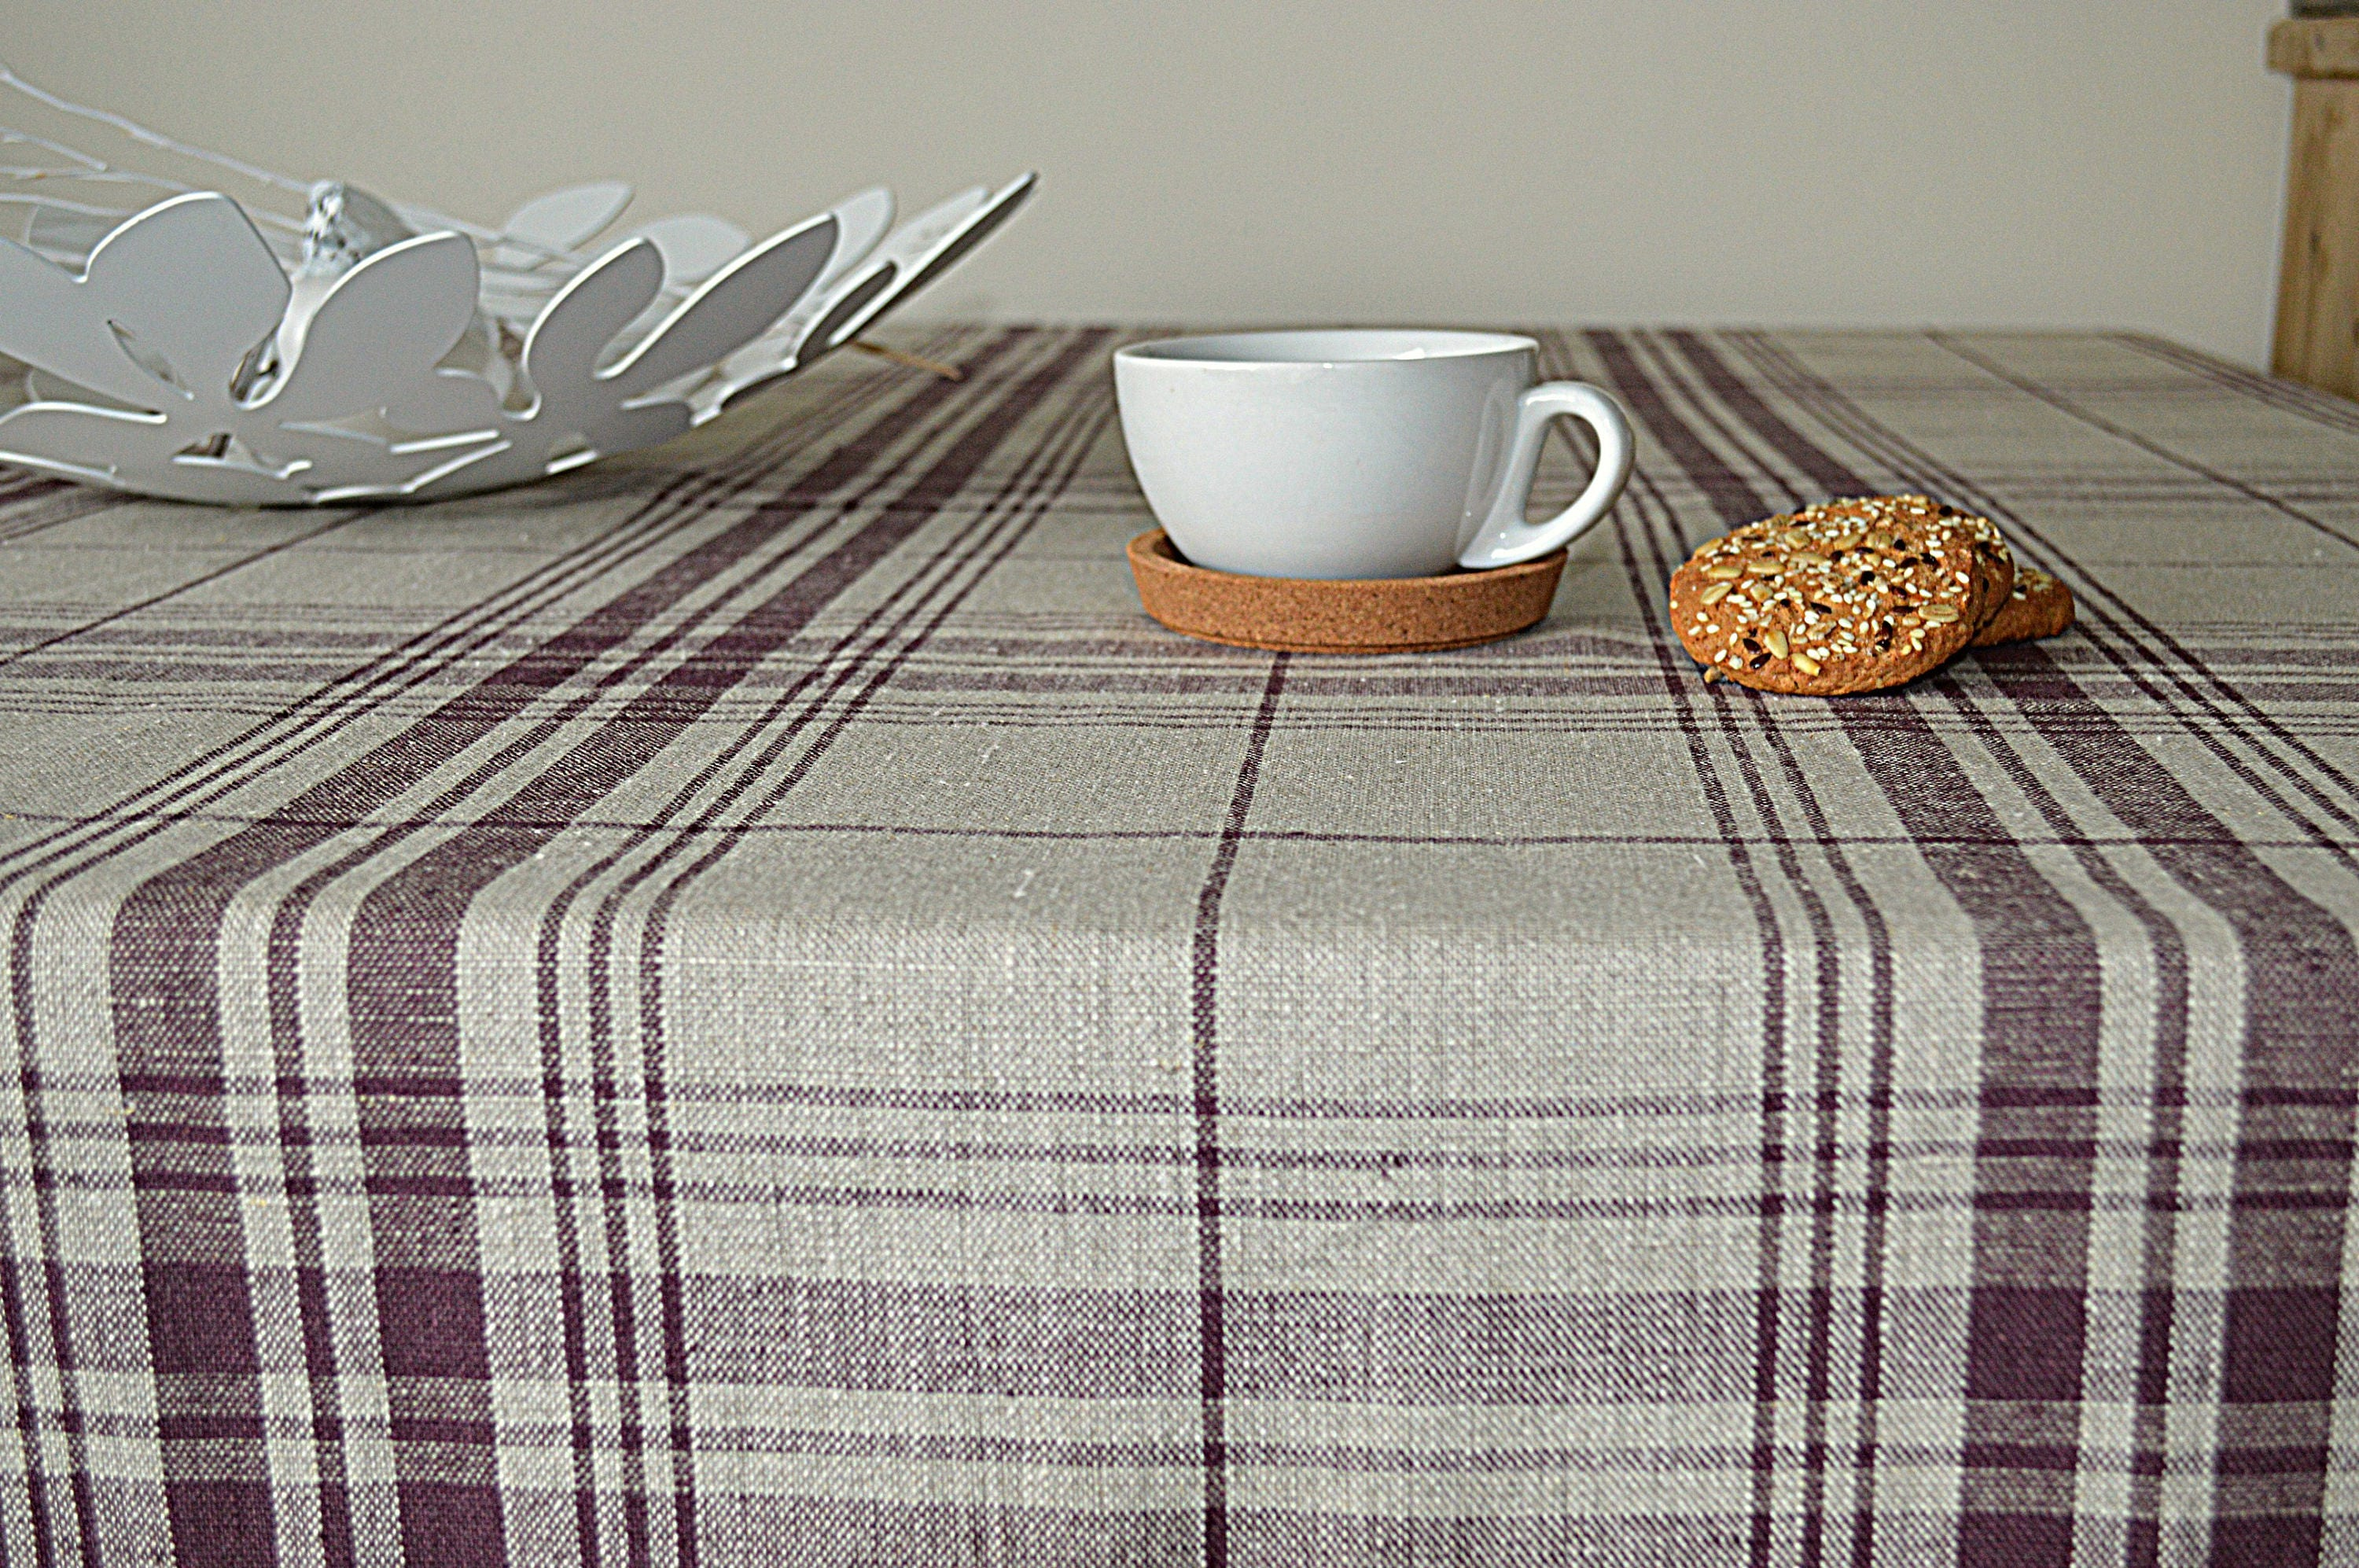 Linen Checkered Tablecloth   Thick Tablecloth With Mitered Corners   Simple  Linen Tablecloth   Rough Softened Linen Tablecloth